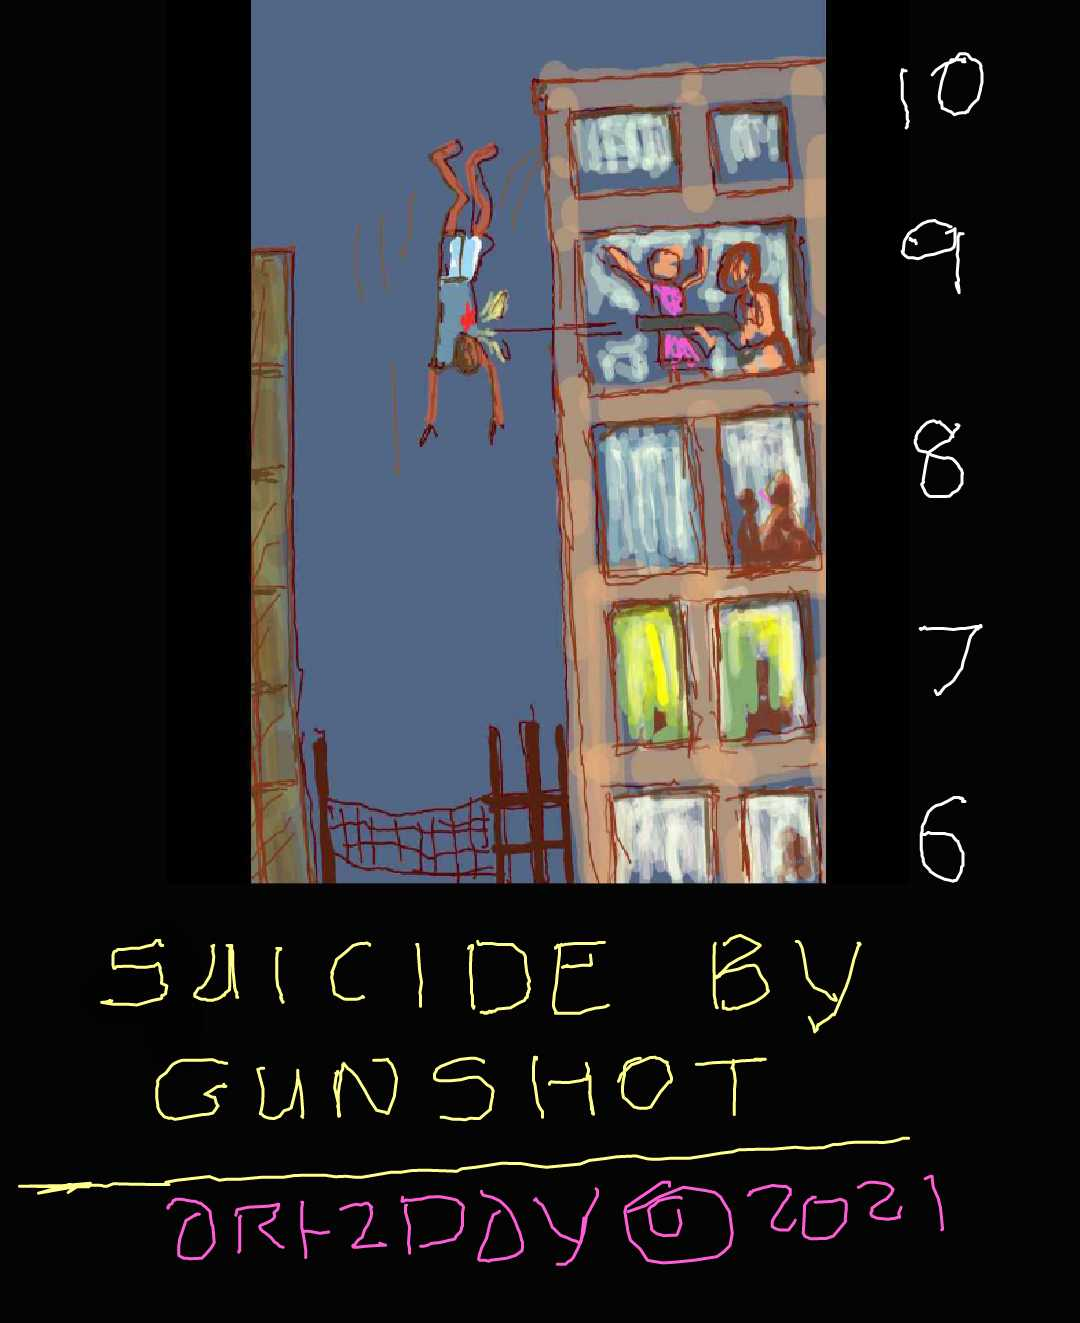 suicide by manslaughter